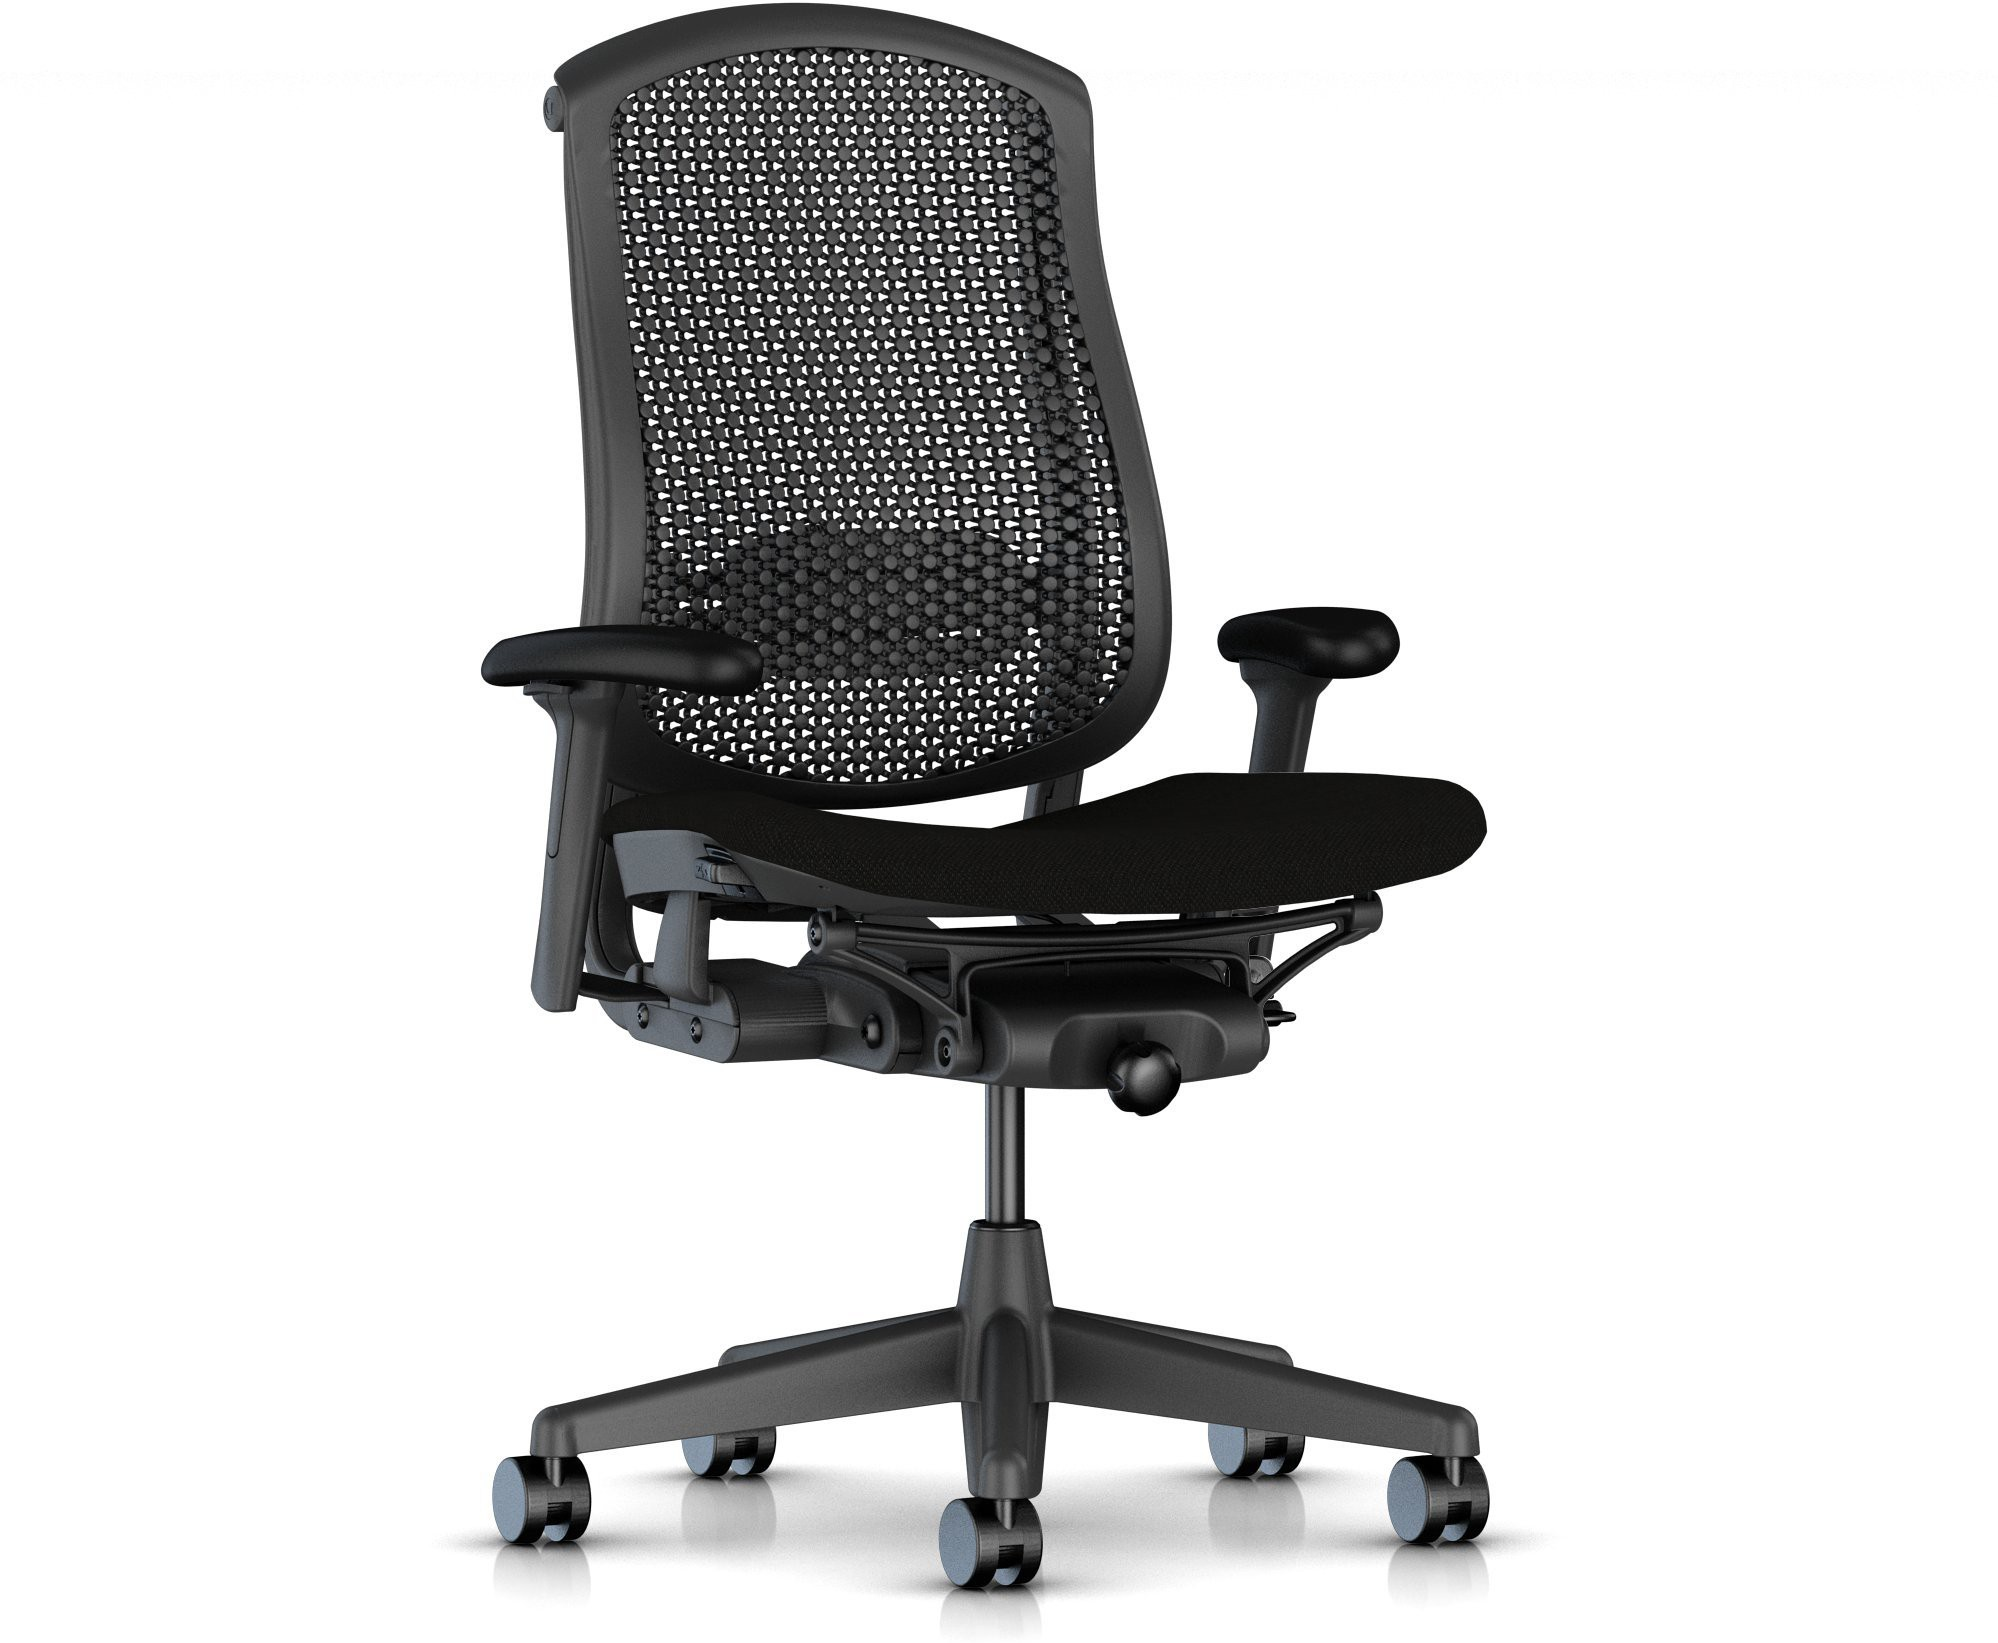 View HermanMiller Celle - Graphite Cellular back with Black upholstered Seat Cushion : Cellular Suspension NA Office Chair(Black) Furniture (HermanMiller)